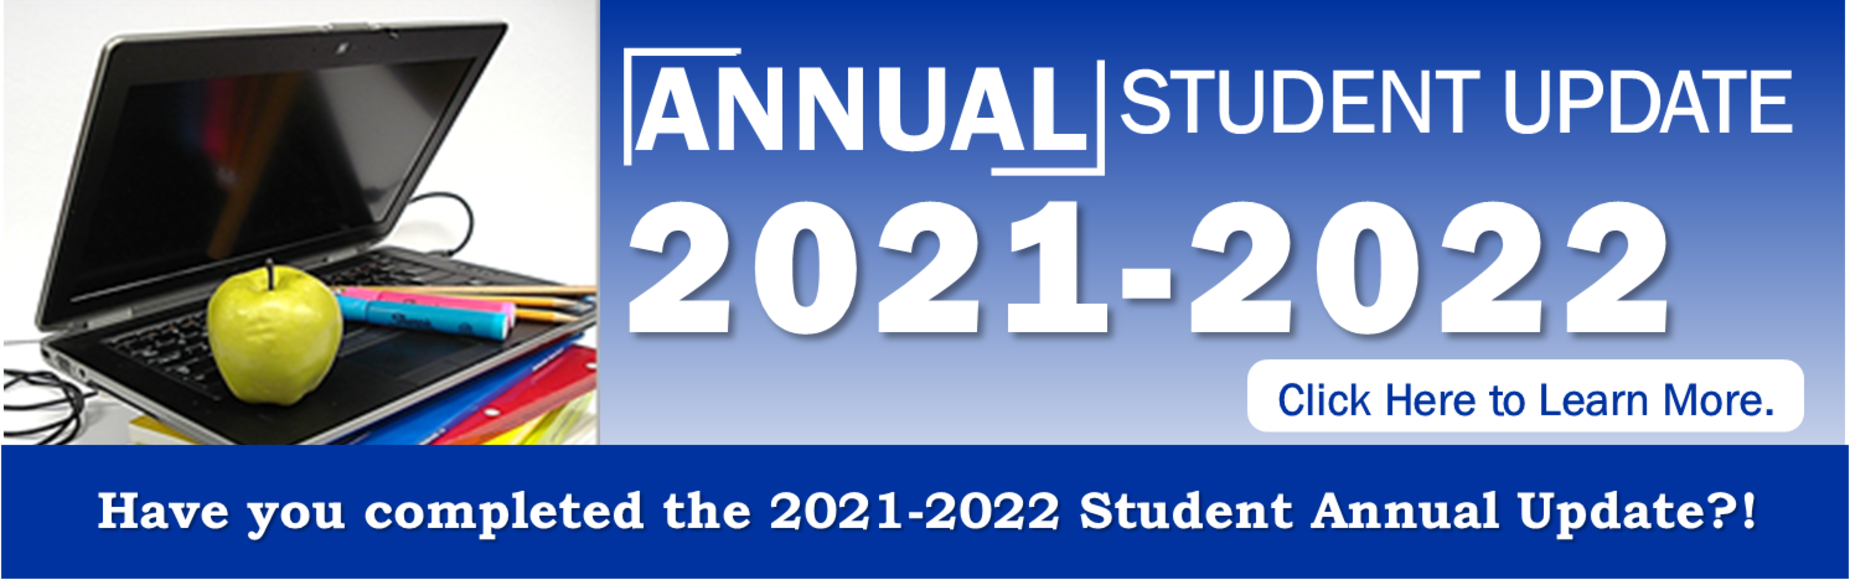 Annual Update 2020-2021 Banner Image